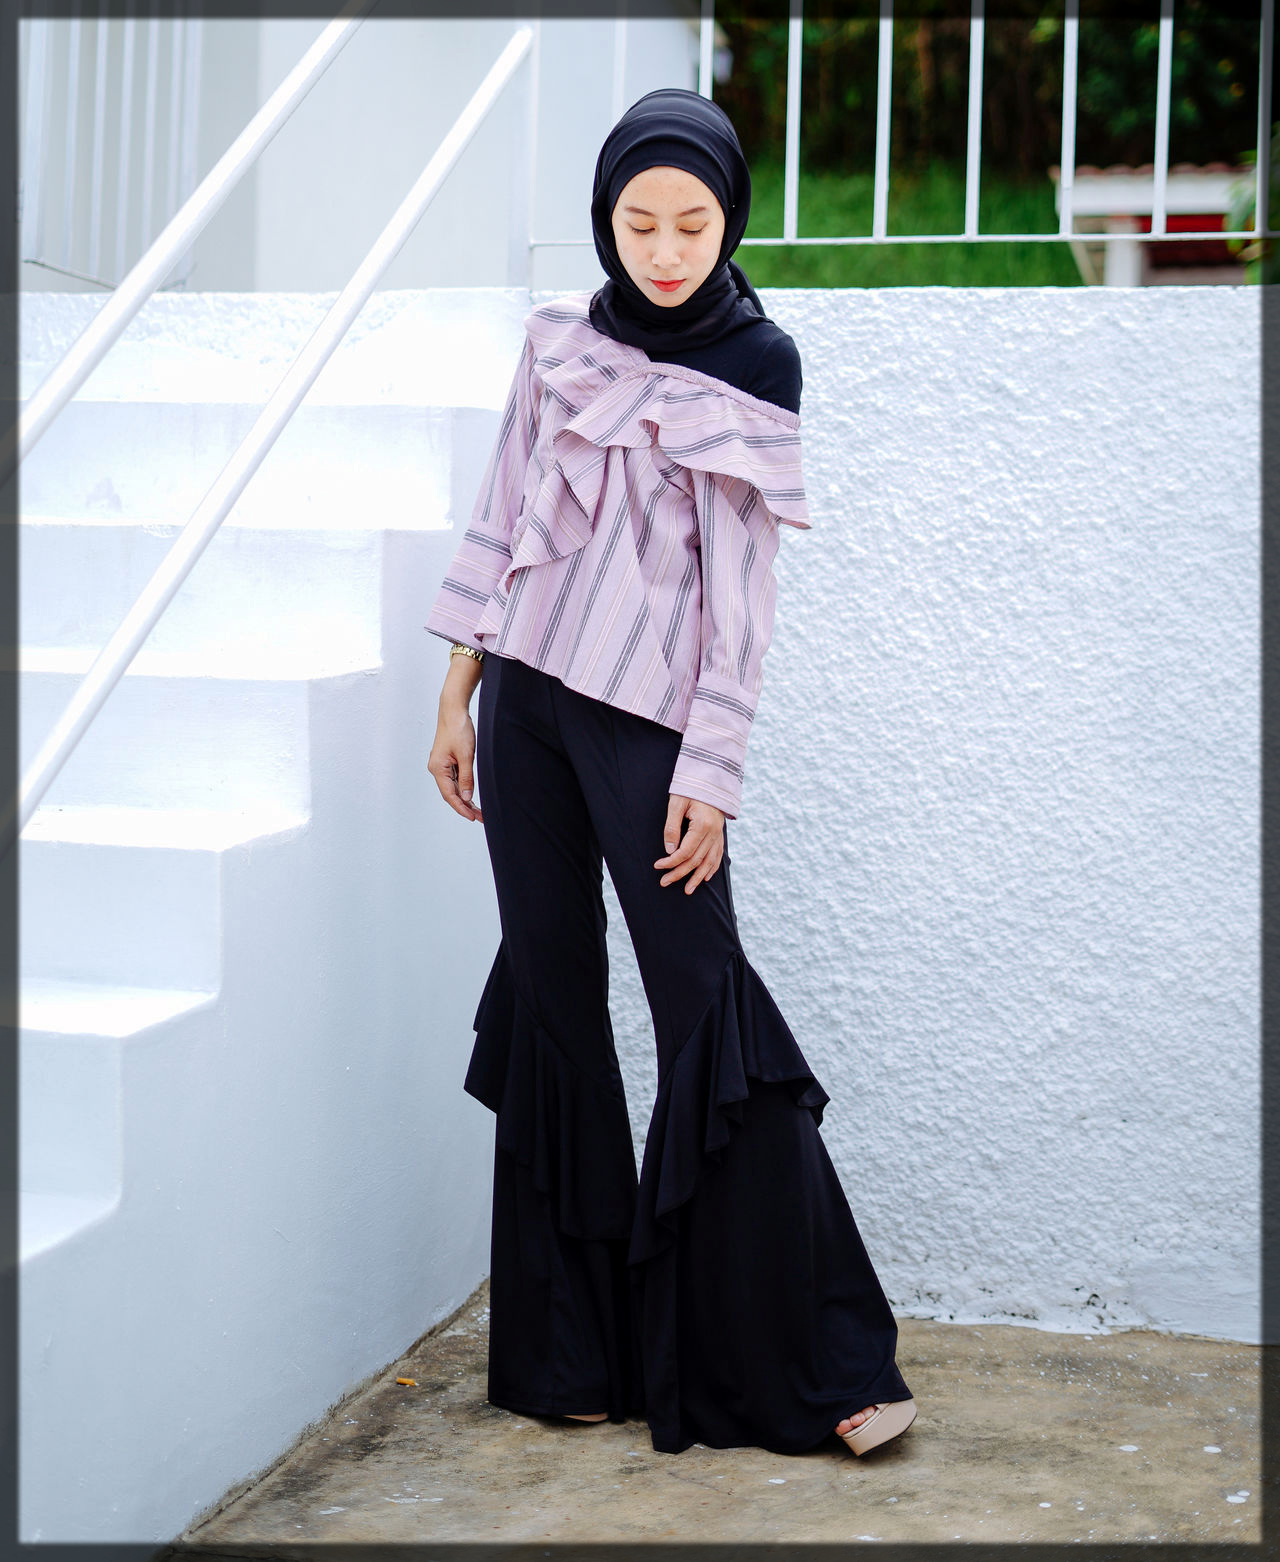 hijab wrapping ideas with modest outfit